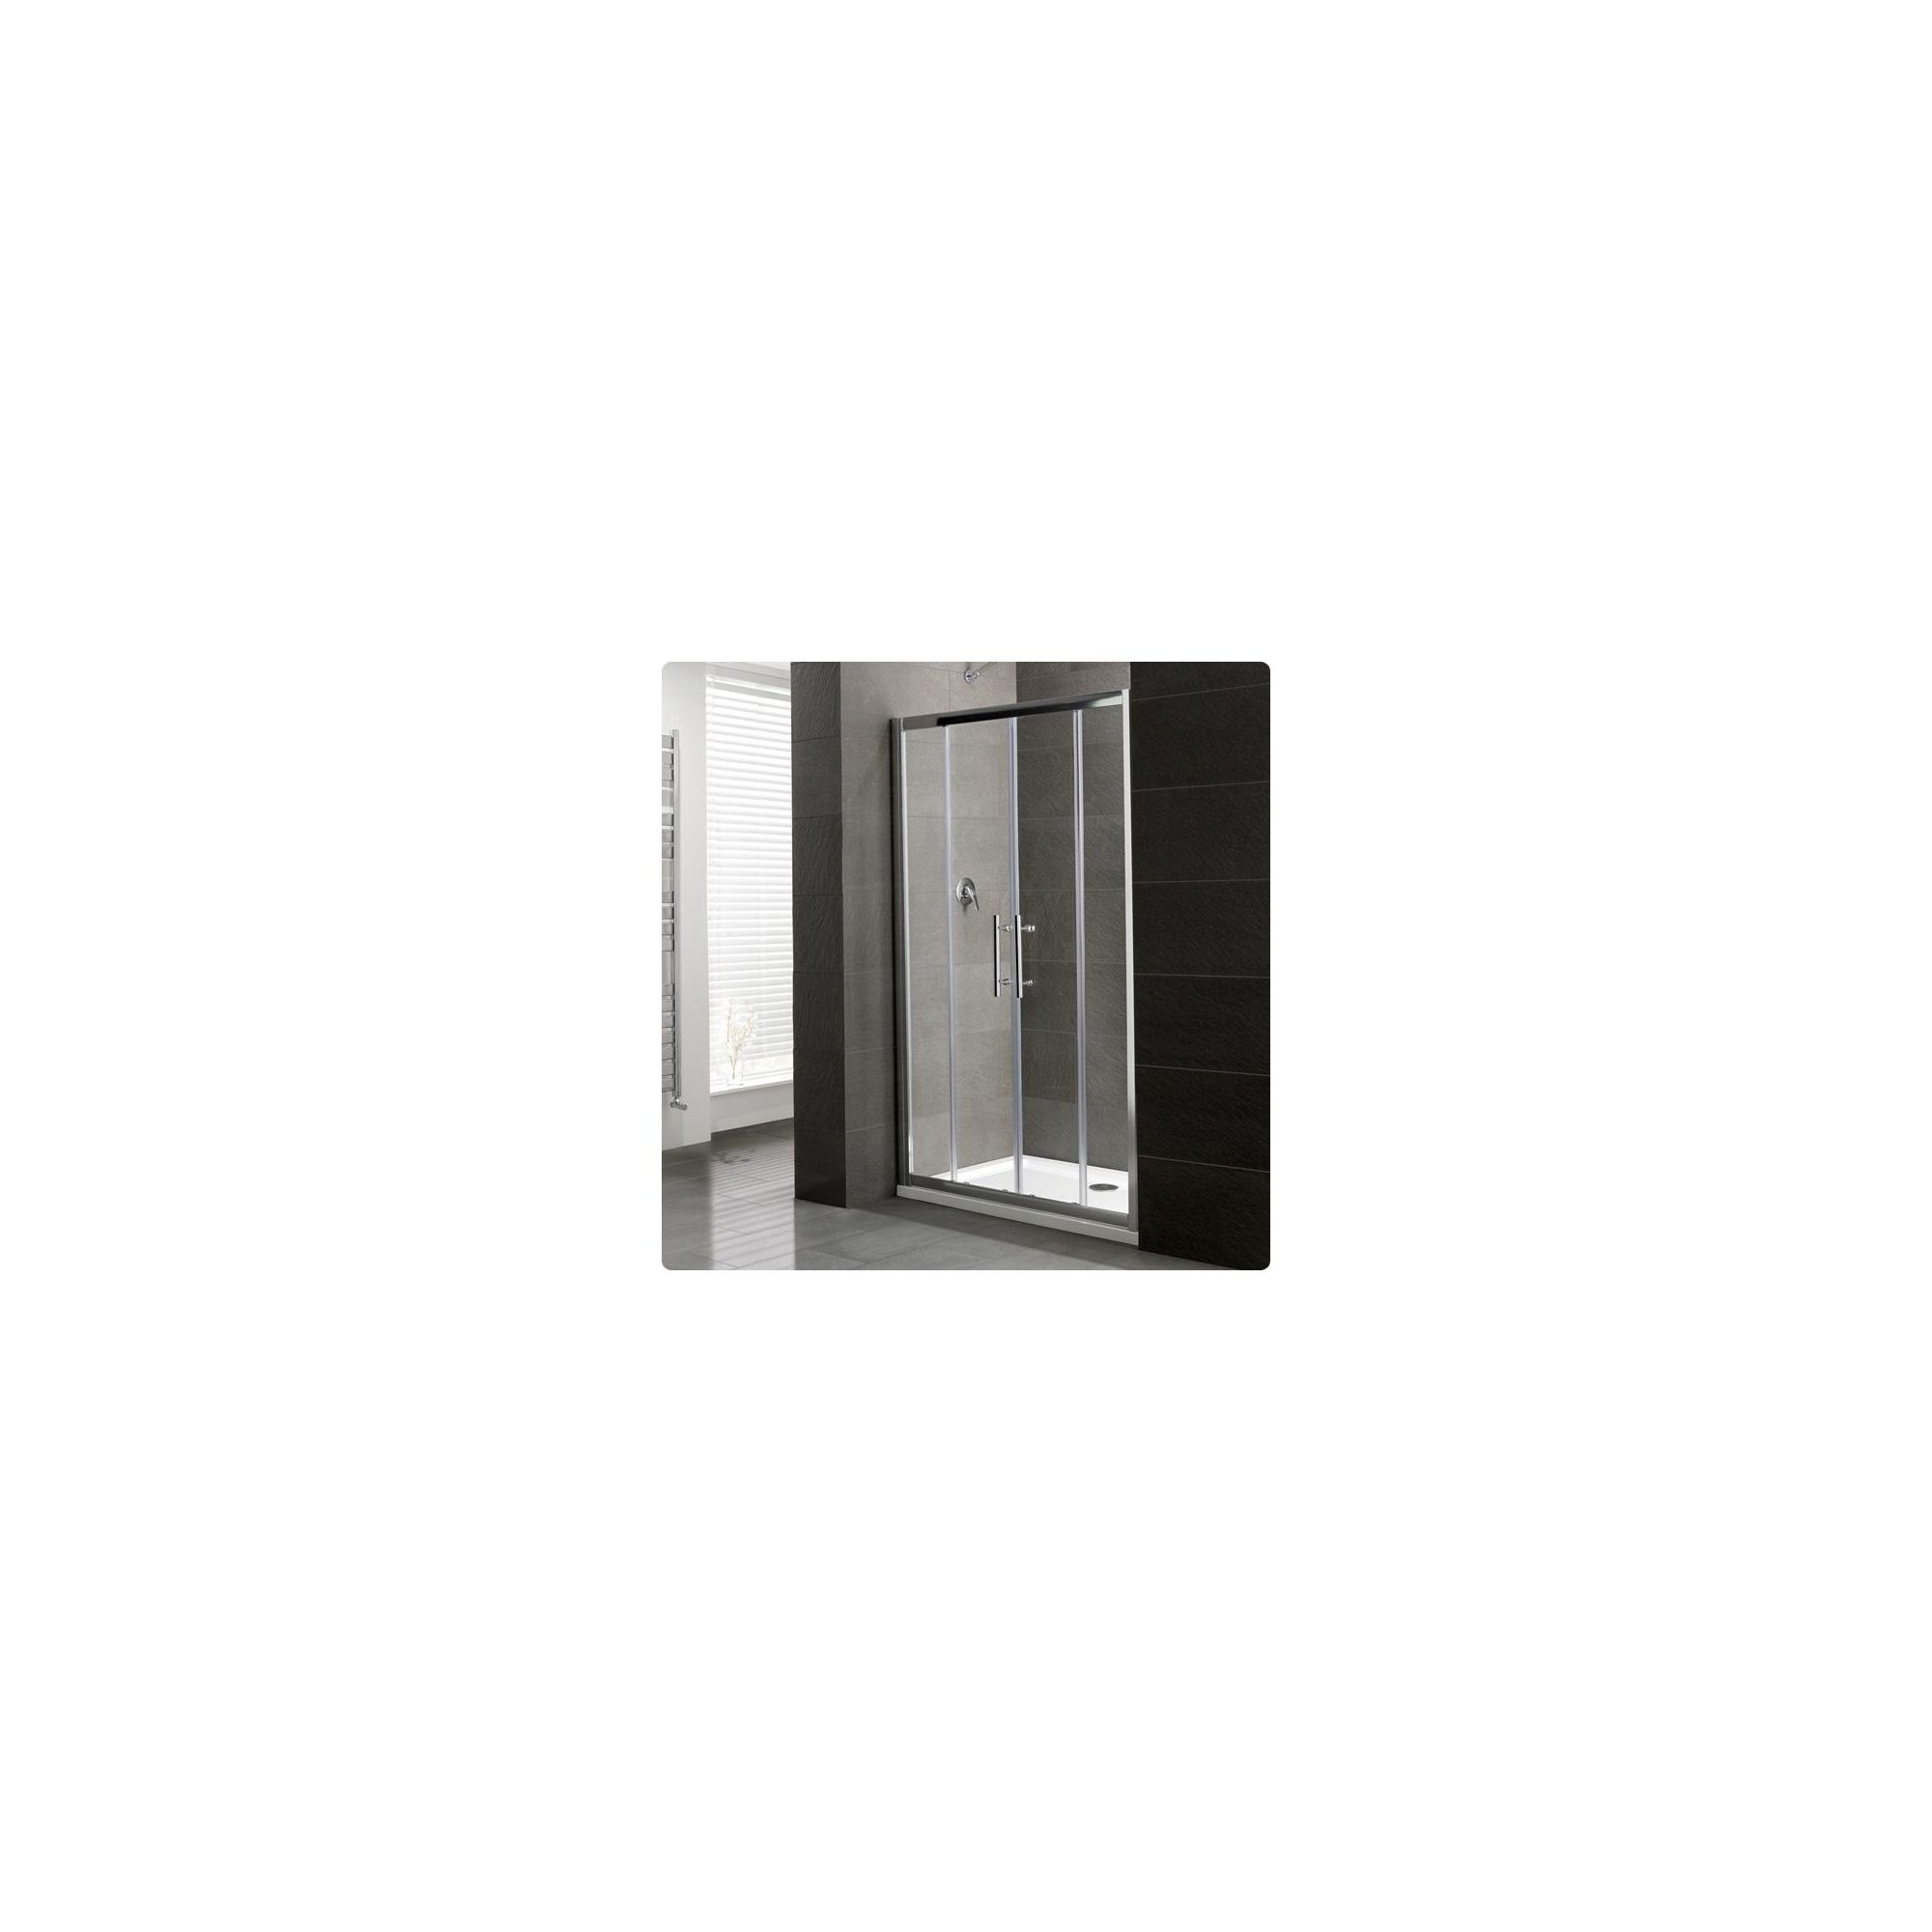 Duchy Select Silver Double Sliding Door Shower Enclosure, 1200mm x 760mm, Standard Tray, 6mm Glass at Tescos Direct